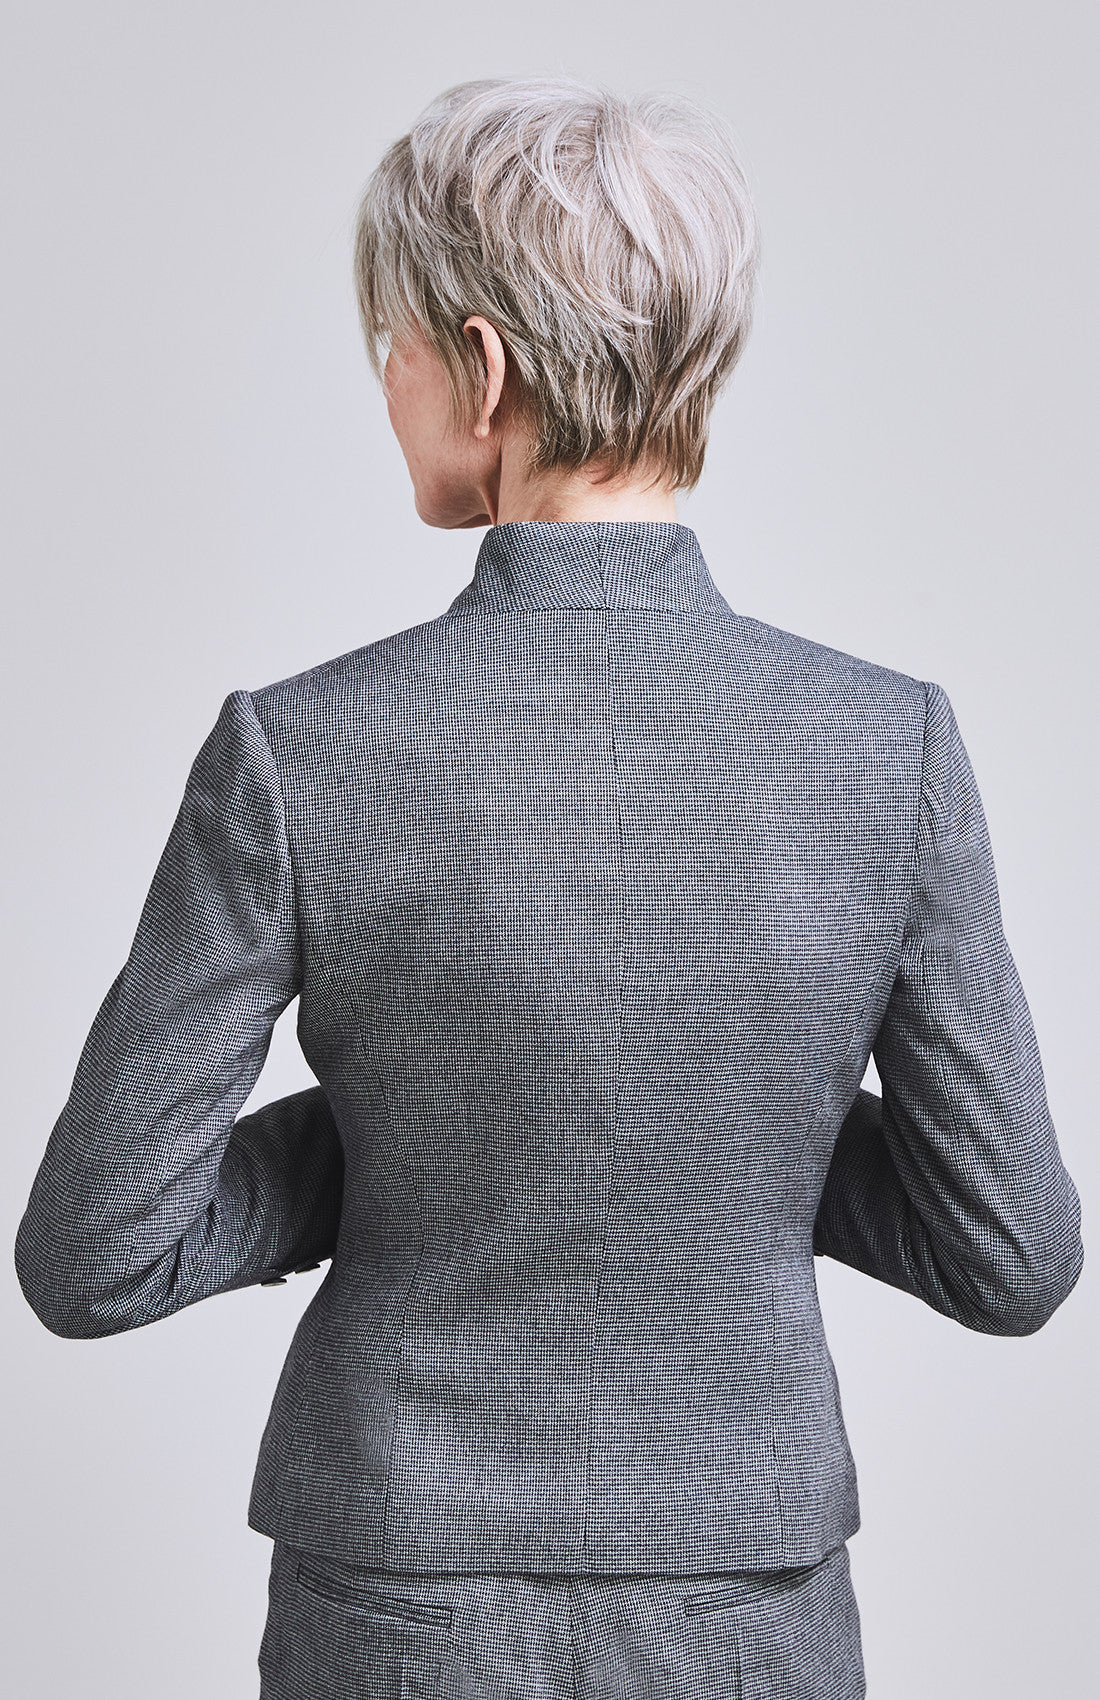 Herringbone feminine tailored fitted suit jacket for work